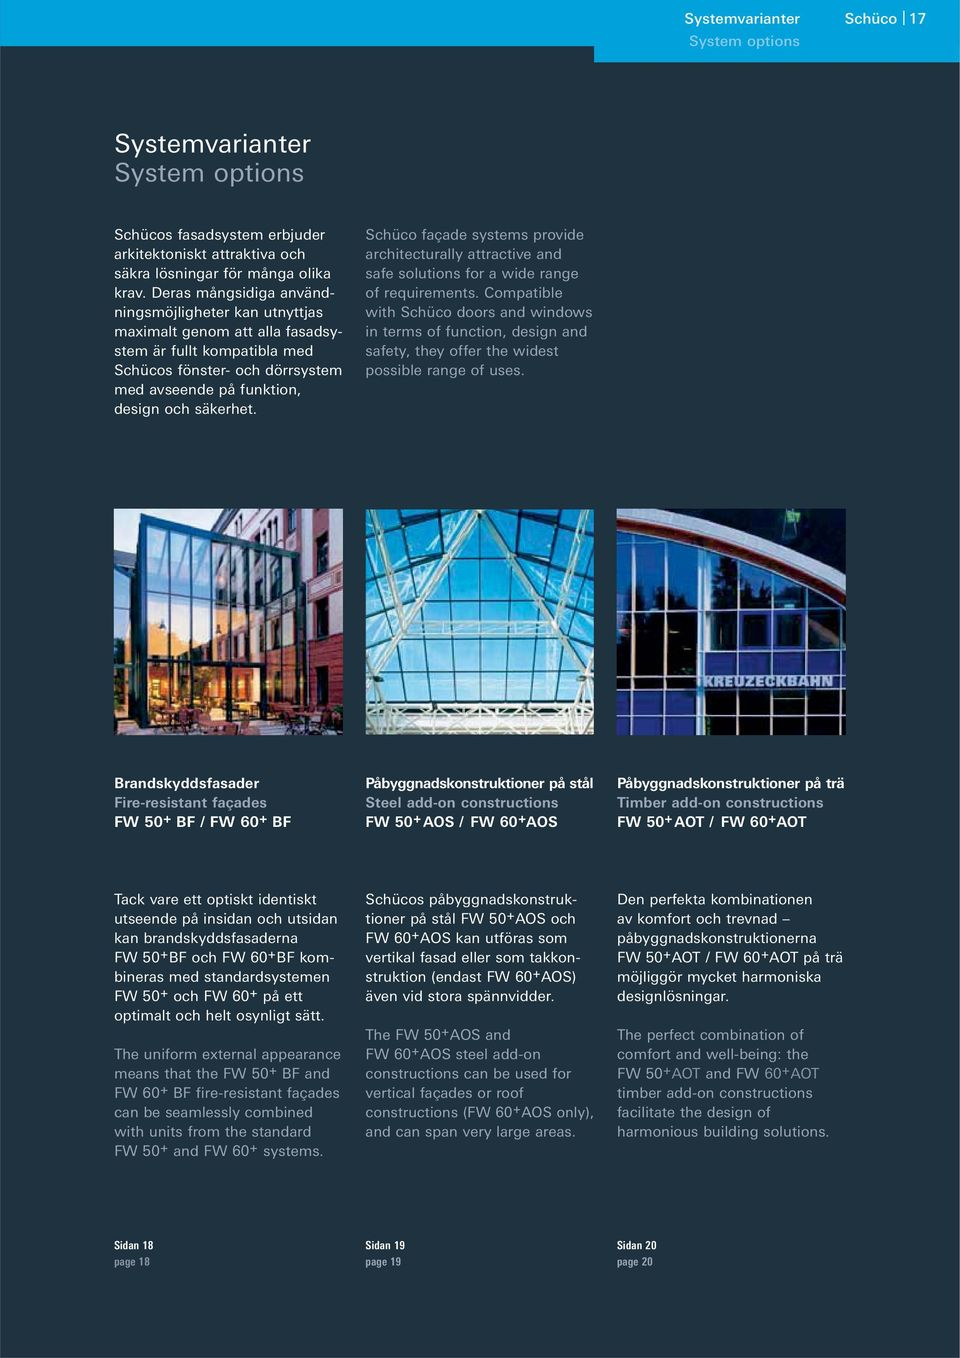 Schüco façade systems provide architecturally attractive and safe solutions for a wide range of requirements.